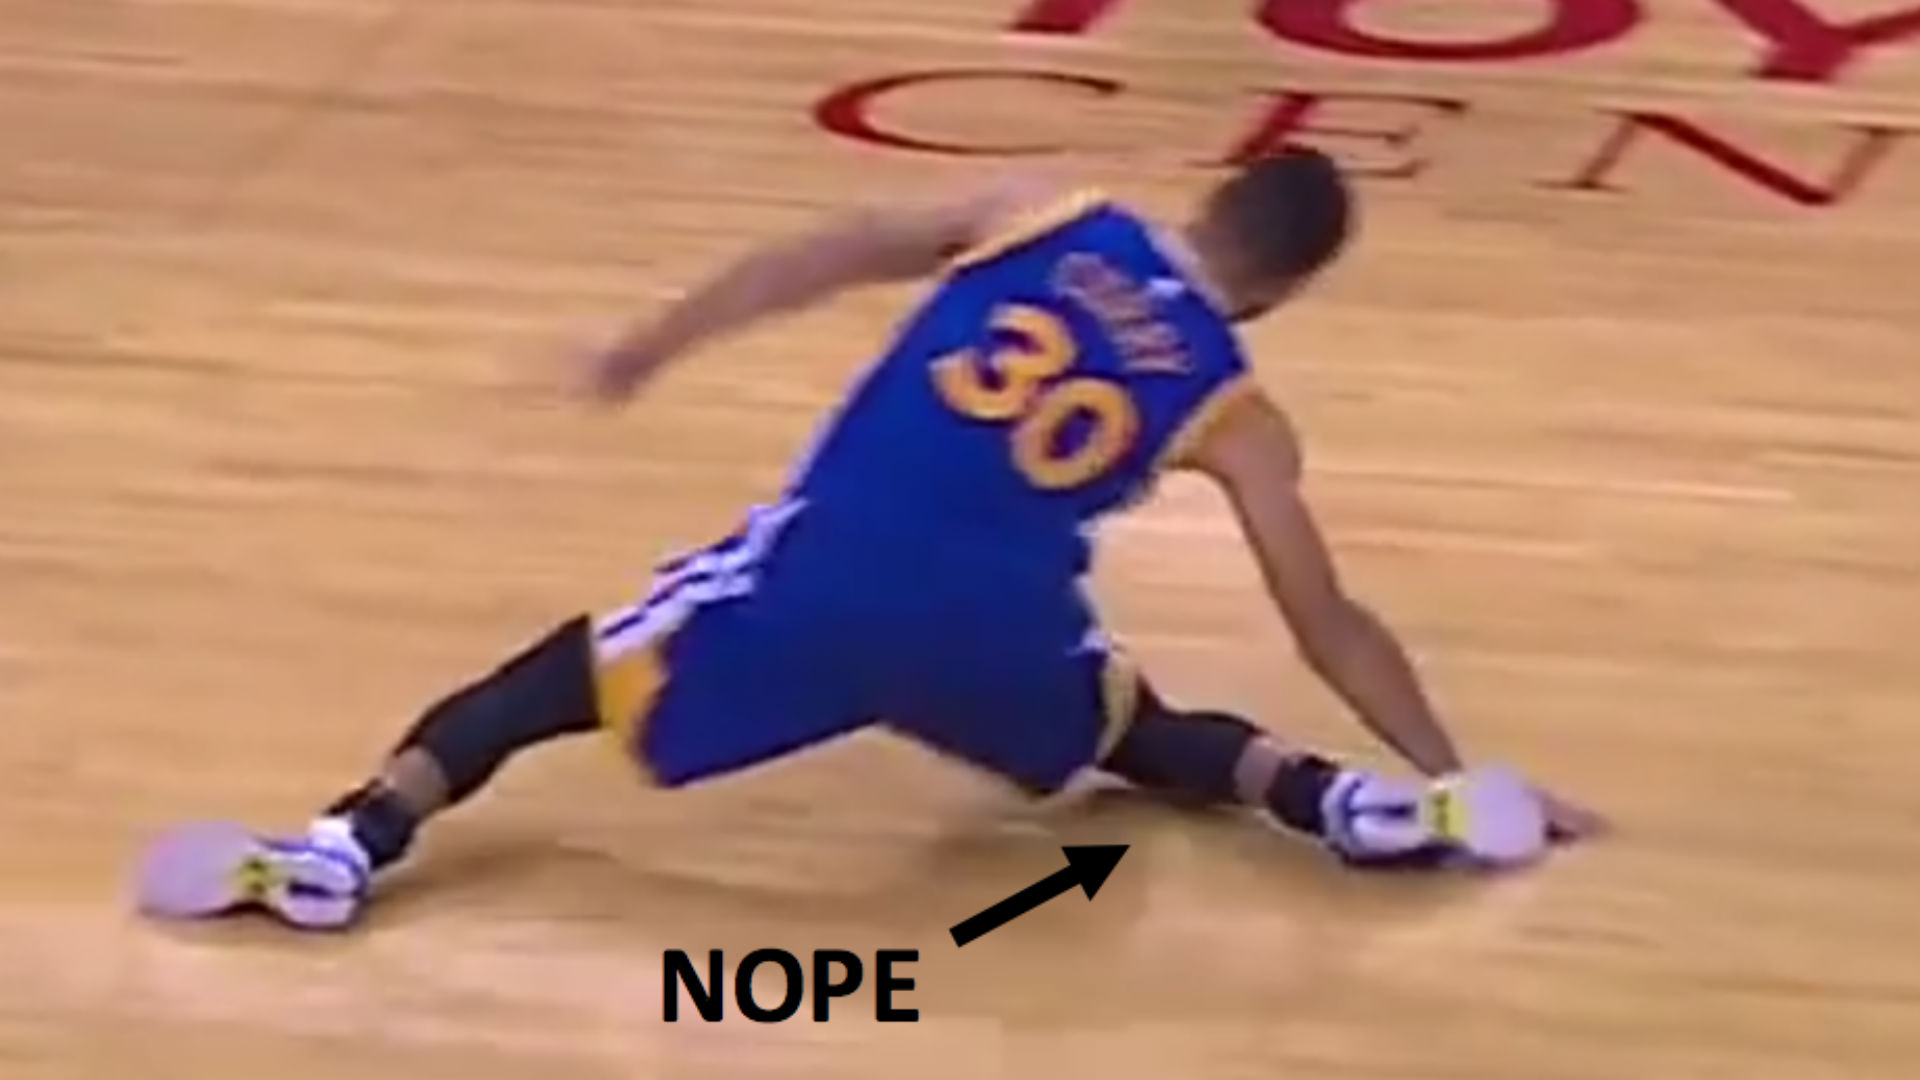 Grade 2 mcl sprain symptoms - What To Expect With Stephen Curry S Mcl Sprain Progress Nba Sporting News